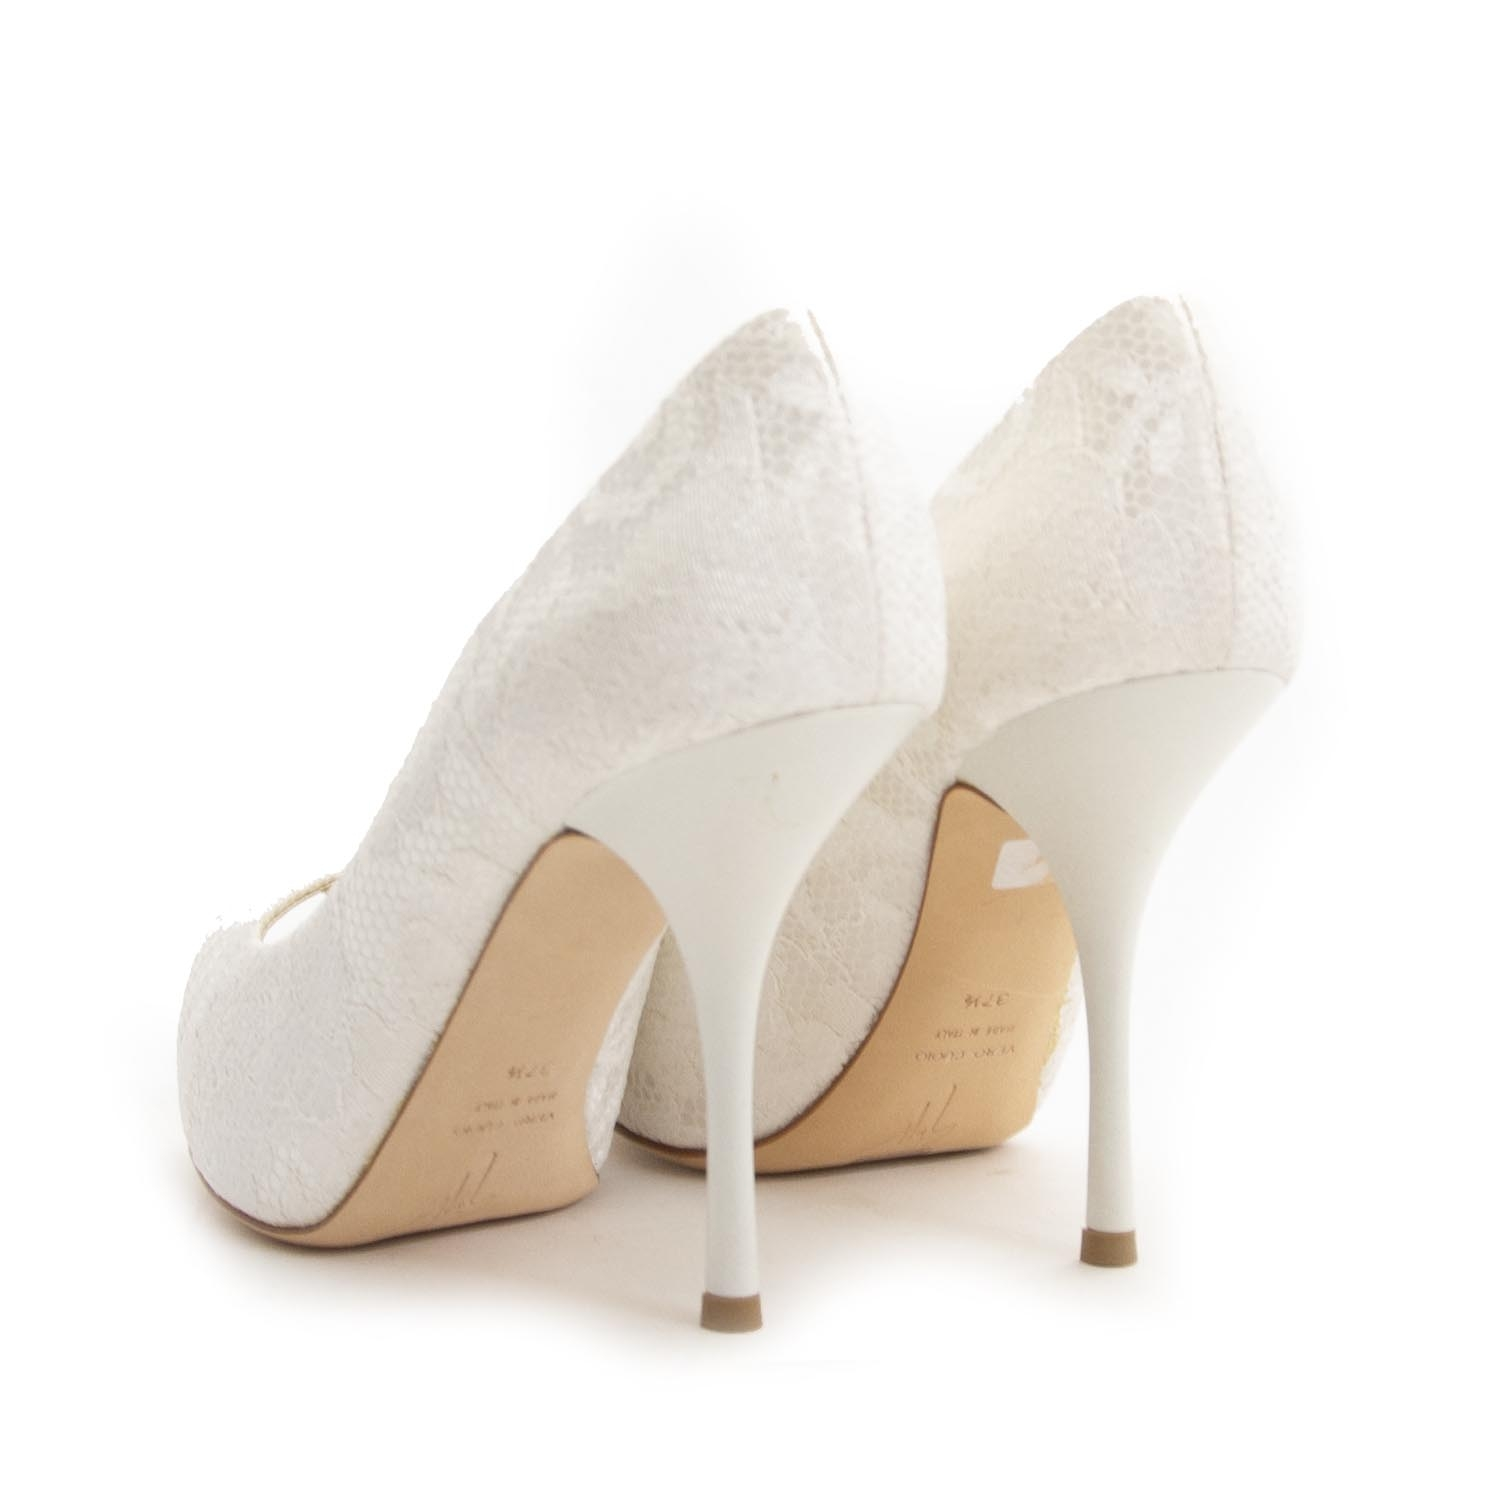 Giuseppe Zanotti White Lace Pump - 37,5 For the best price at LabelLov. Pour le meilleur prix à LabelLOV. Voor de beste prijs bij LabelLOV.